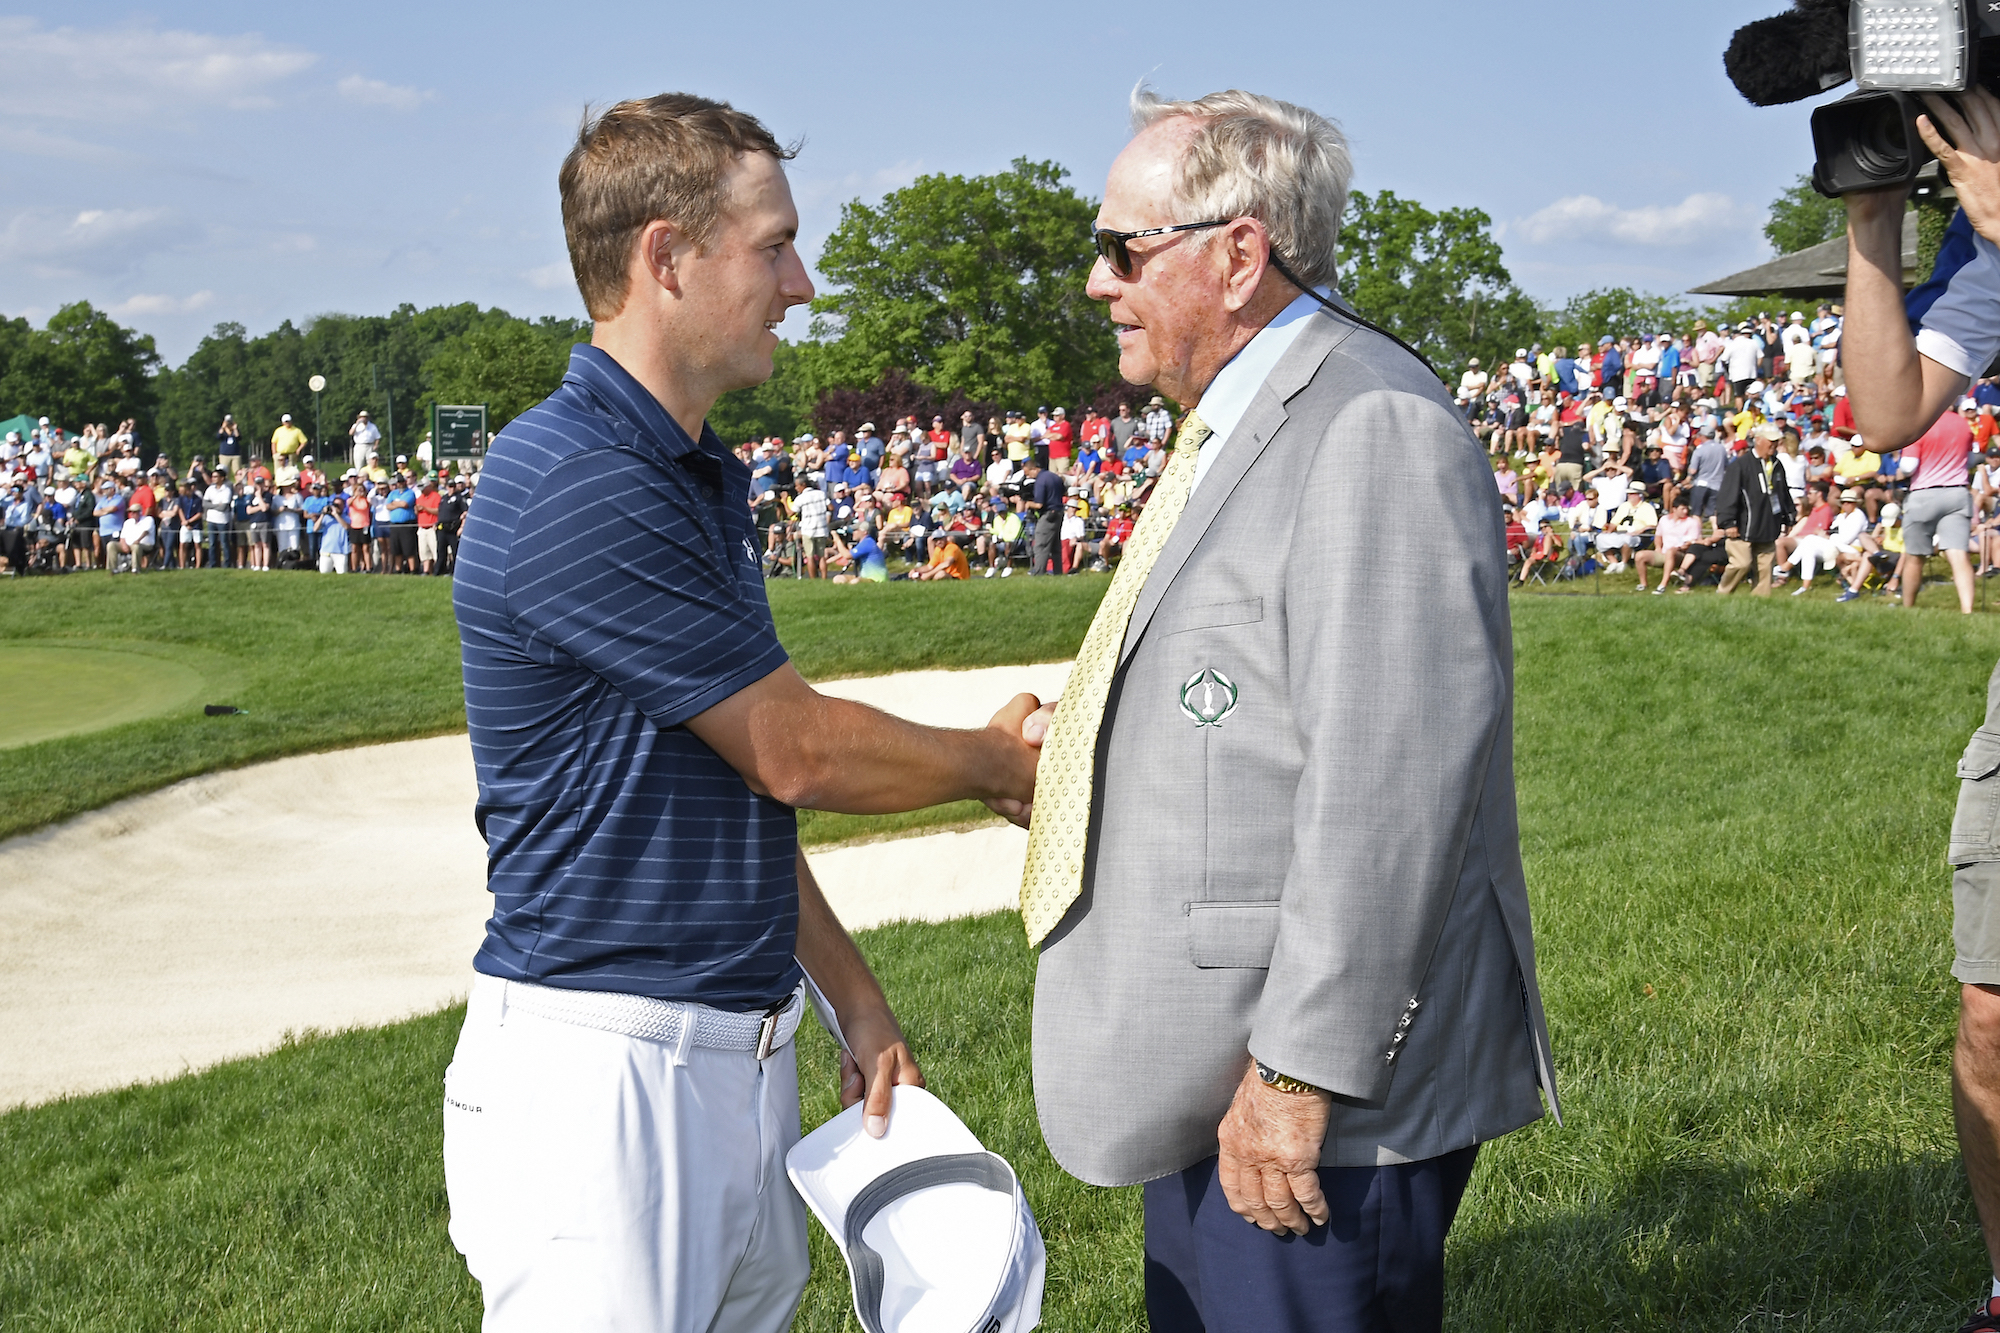 The 2019 Memorial Tournament: Final Round - Jordan and Jack Nicklaus After Sunday's Round